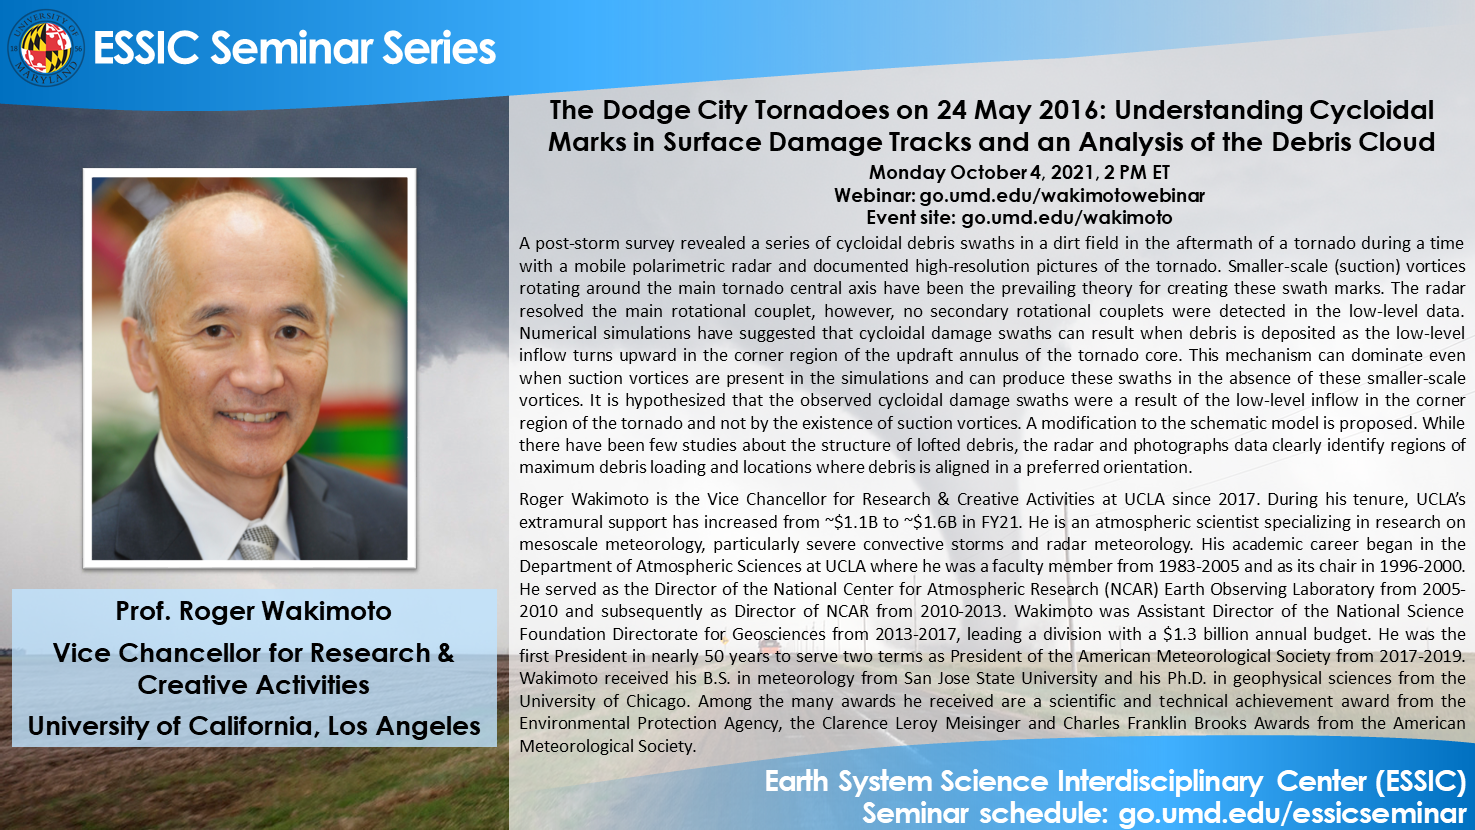 The seminar flyer for Dr. Roger Wakimoto's seminar. All text is printed on the website.